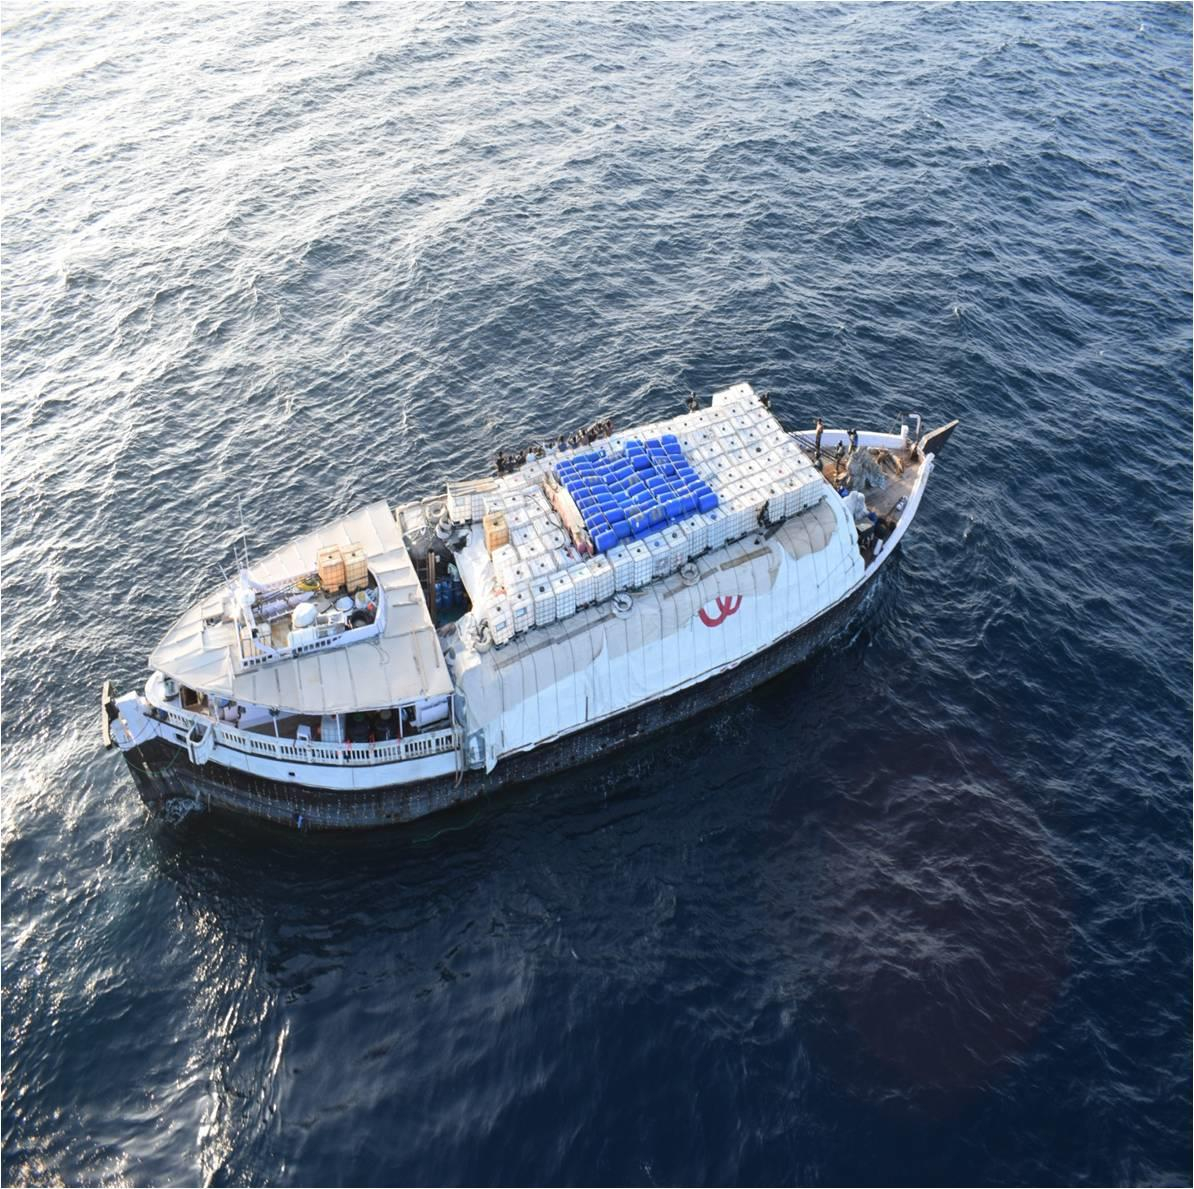 INS Sumedha comes to rescue of stranded vessel with 13 Indian crew on it near Somali coast